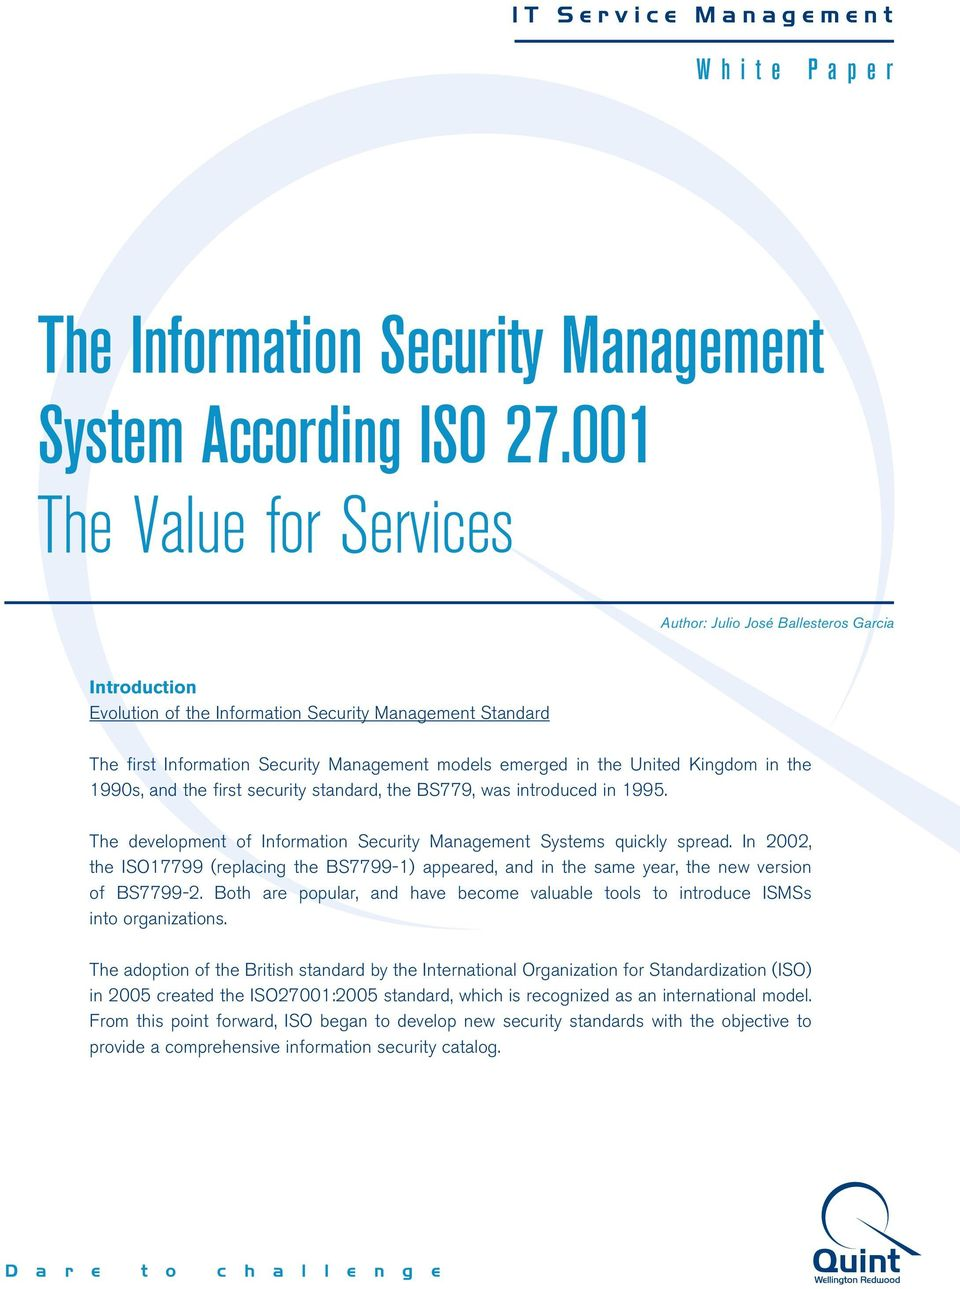 United Kingdom in the 1990s, and the first security standard, the BS779, was introduced in 1995. The development of Information Security Management Systems quickly spread.